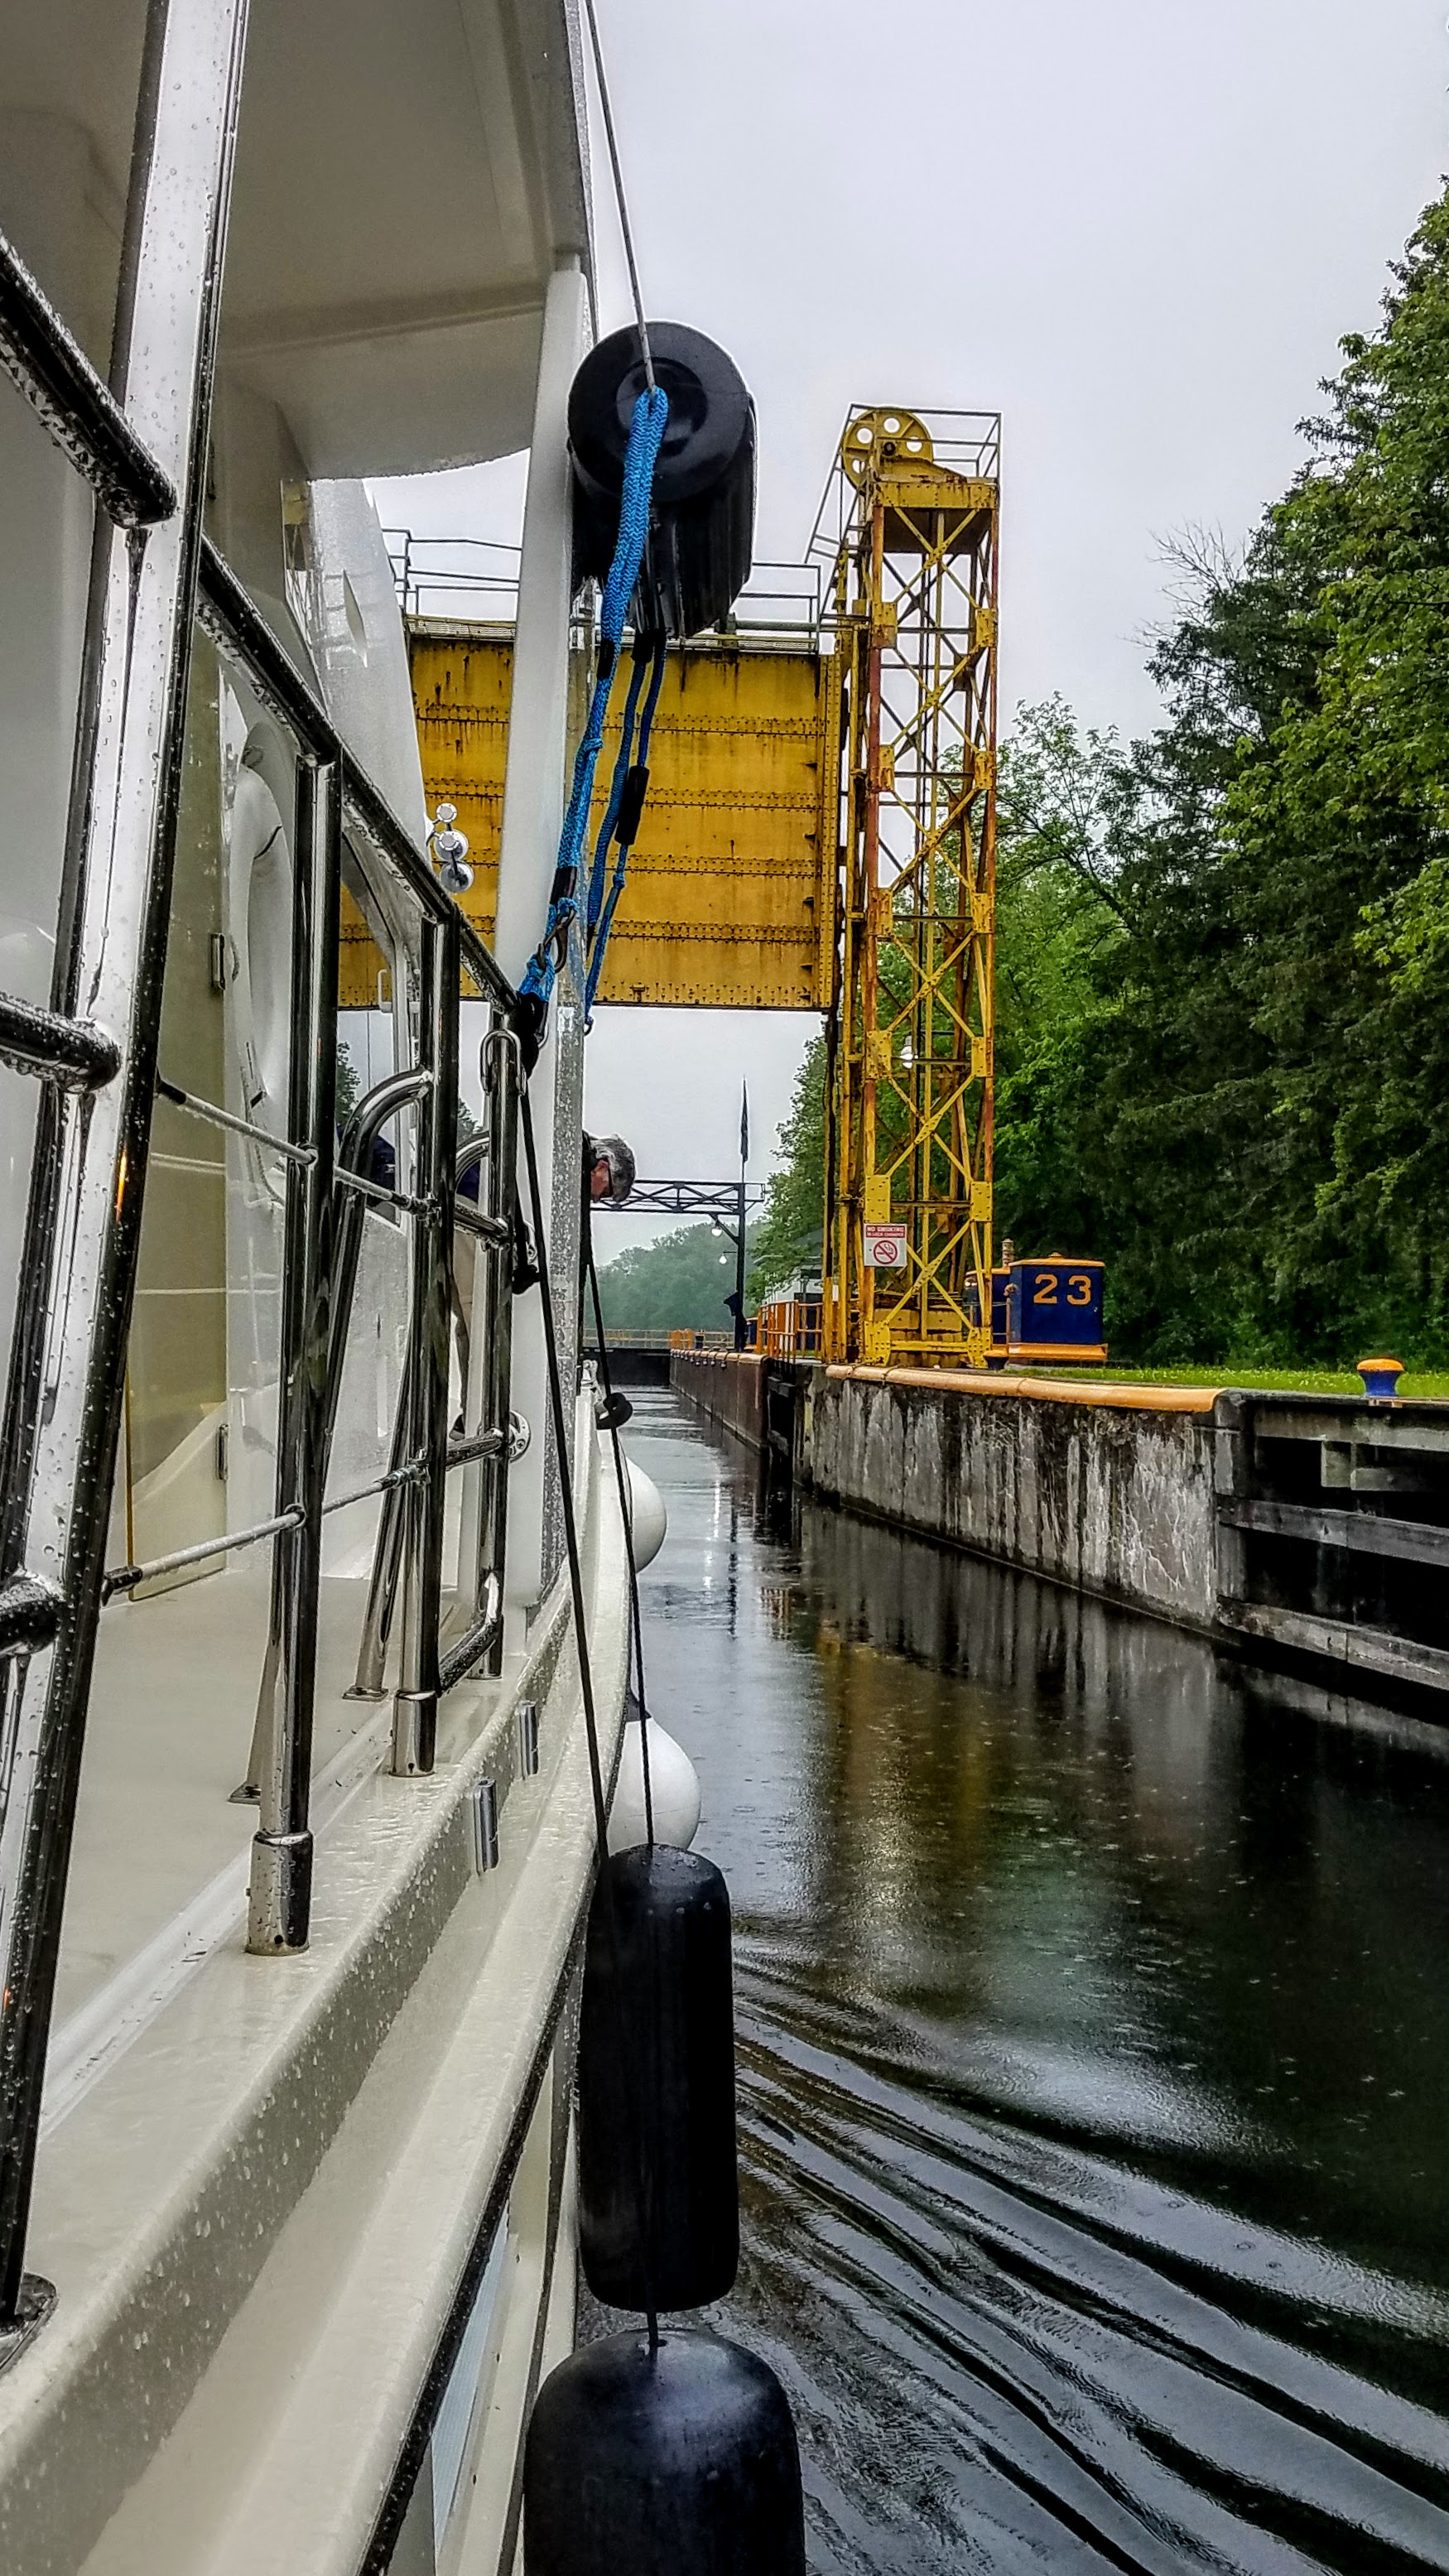 Entering the last lock of the Erie Canal…lock 23